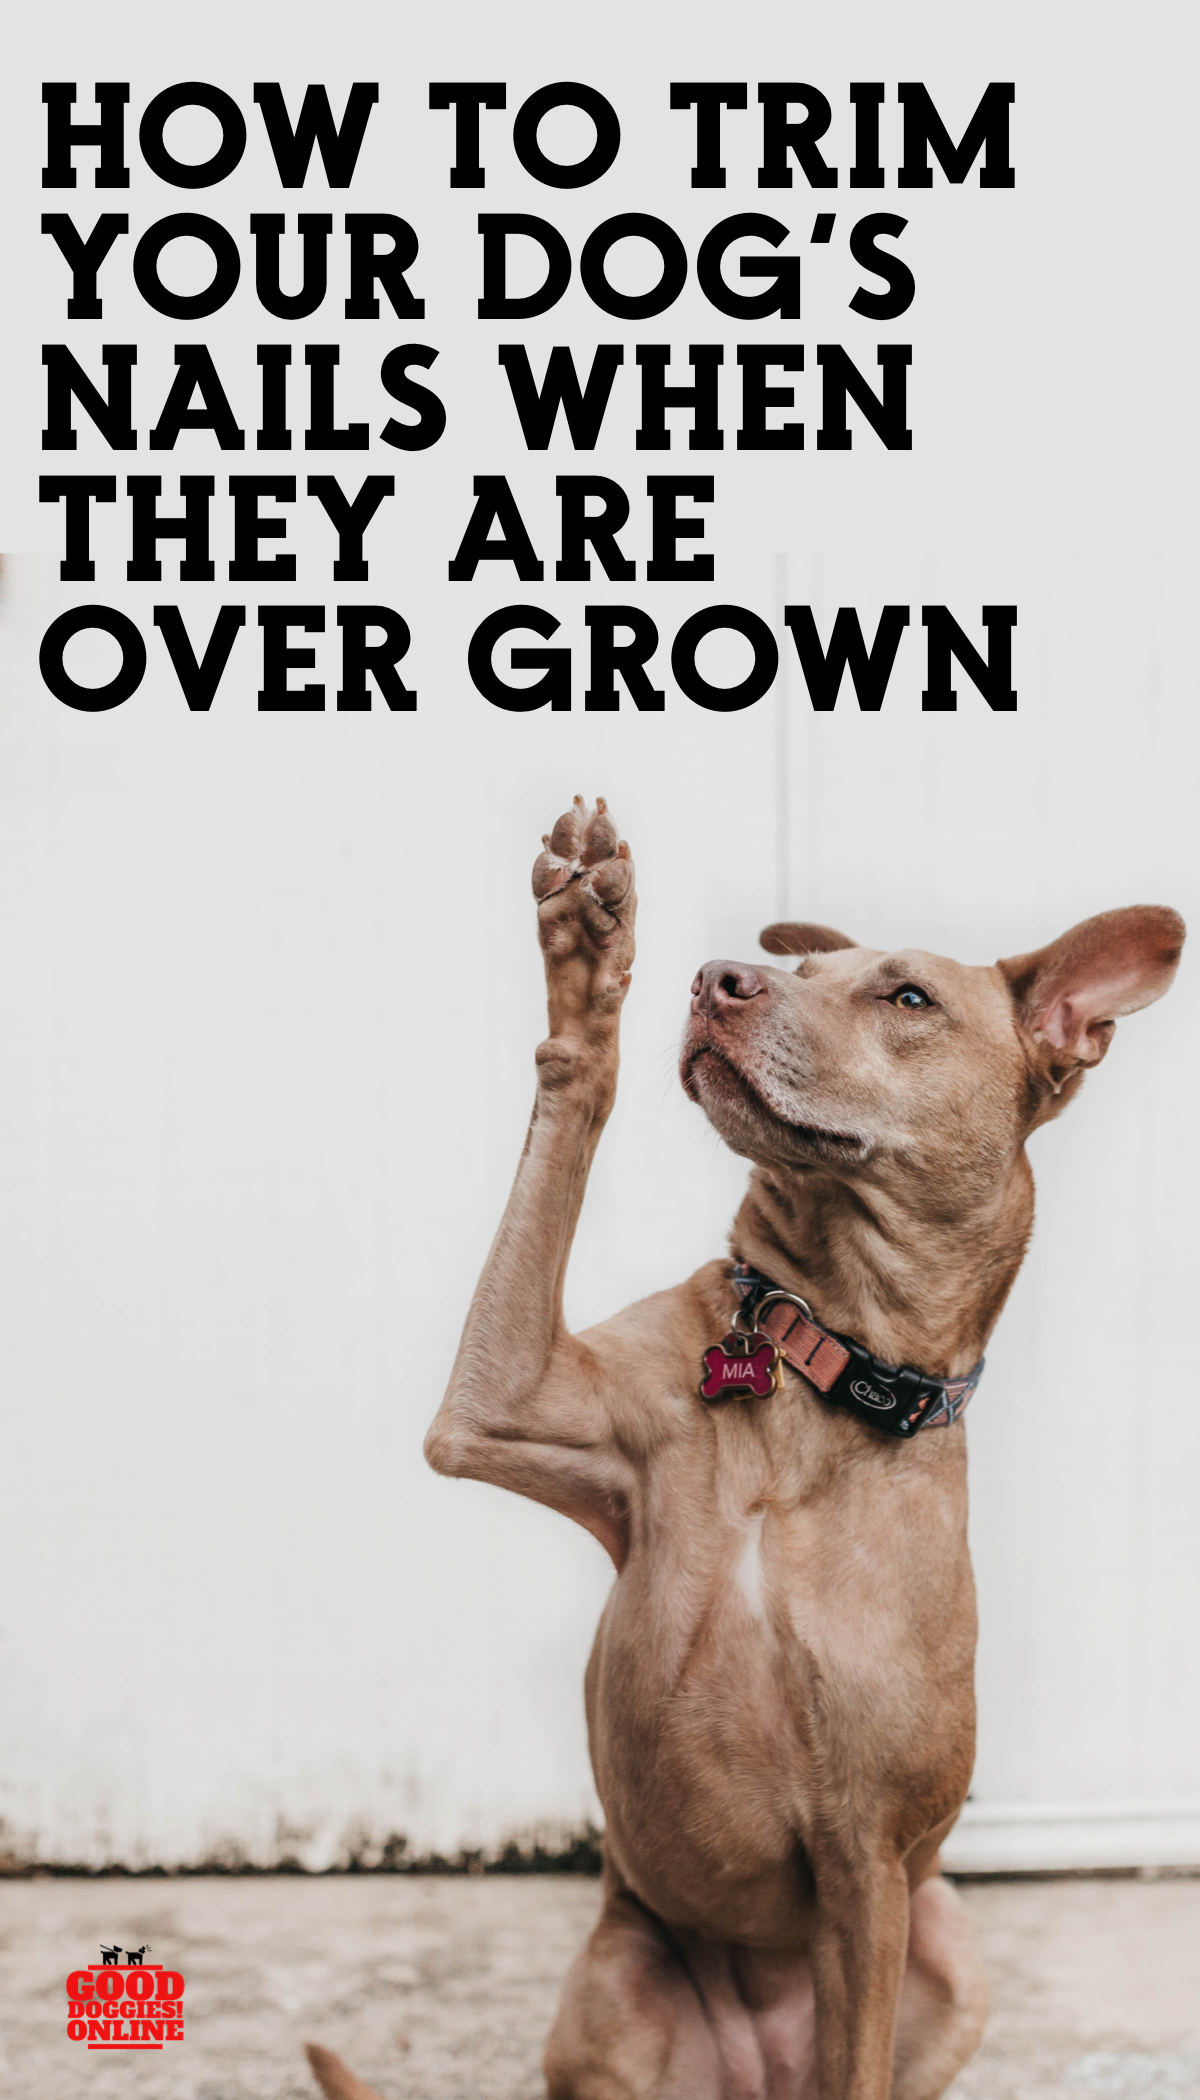 Hire To Trim Dog Nails That Are Overgrown Check Out These Dog Grooming Tips On How To Clip Your Dog S Nails Trimming Dog Nails Dog Nails Good Doggies Online